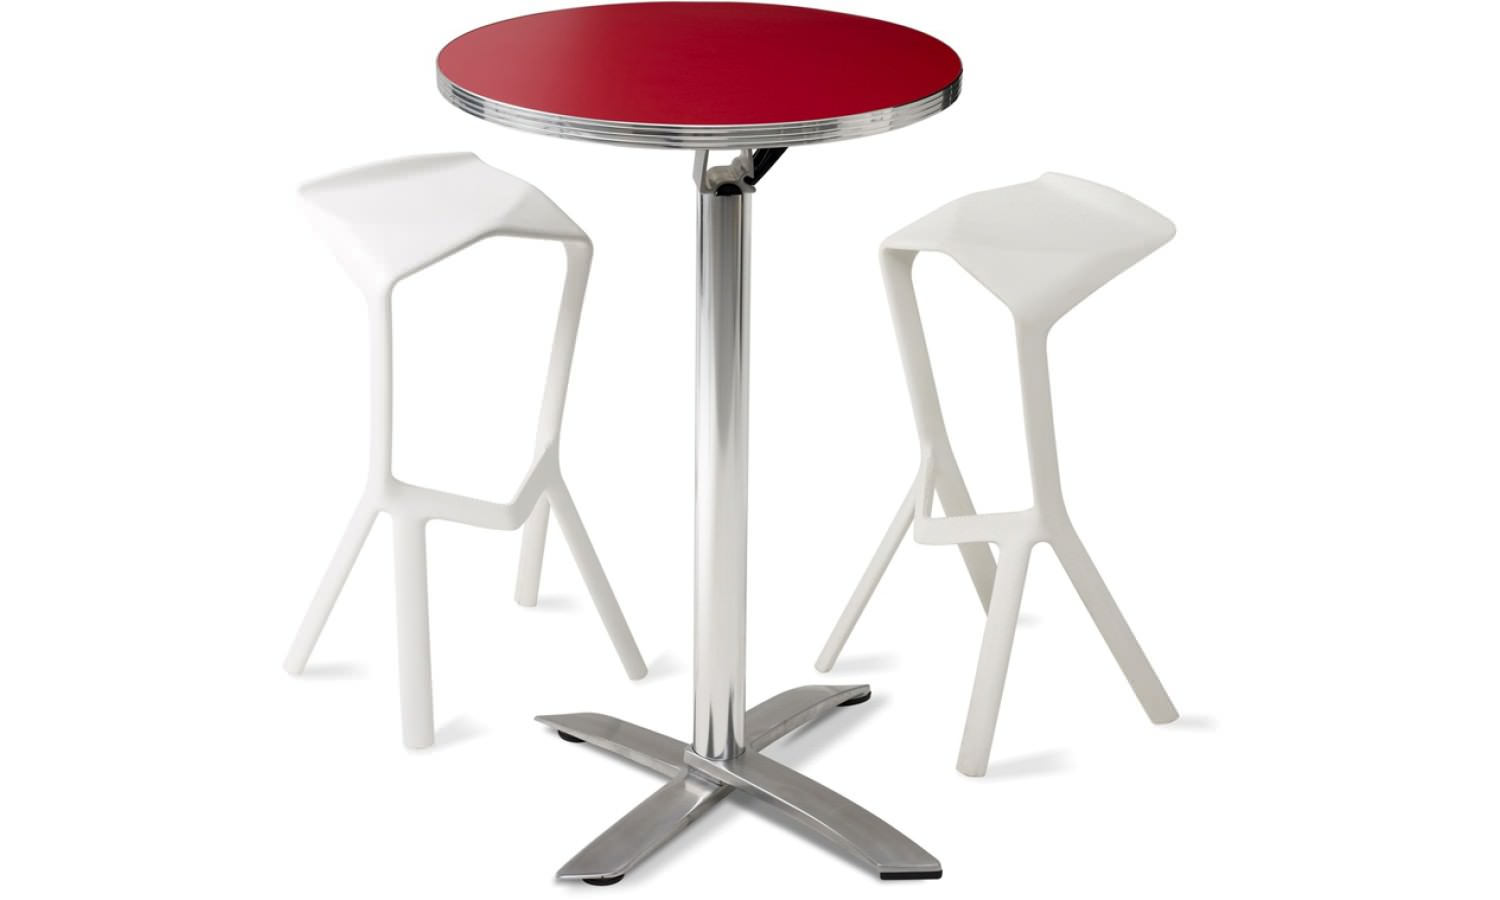 White Space Saving Table And Chairs Tall Bar Tables A Space Saving Dining Furniture For Small